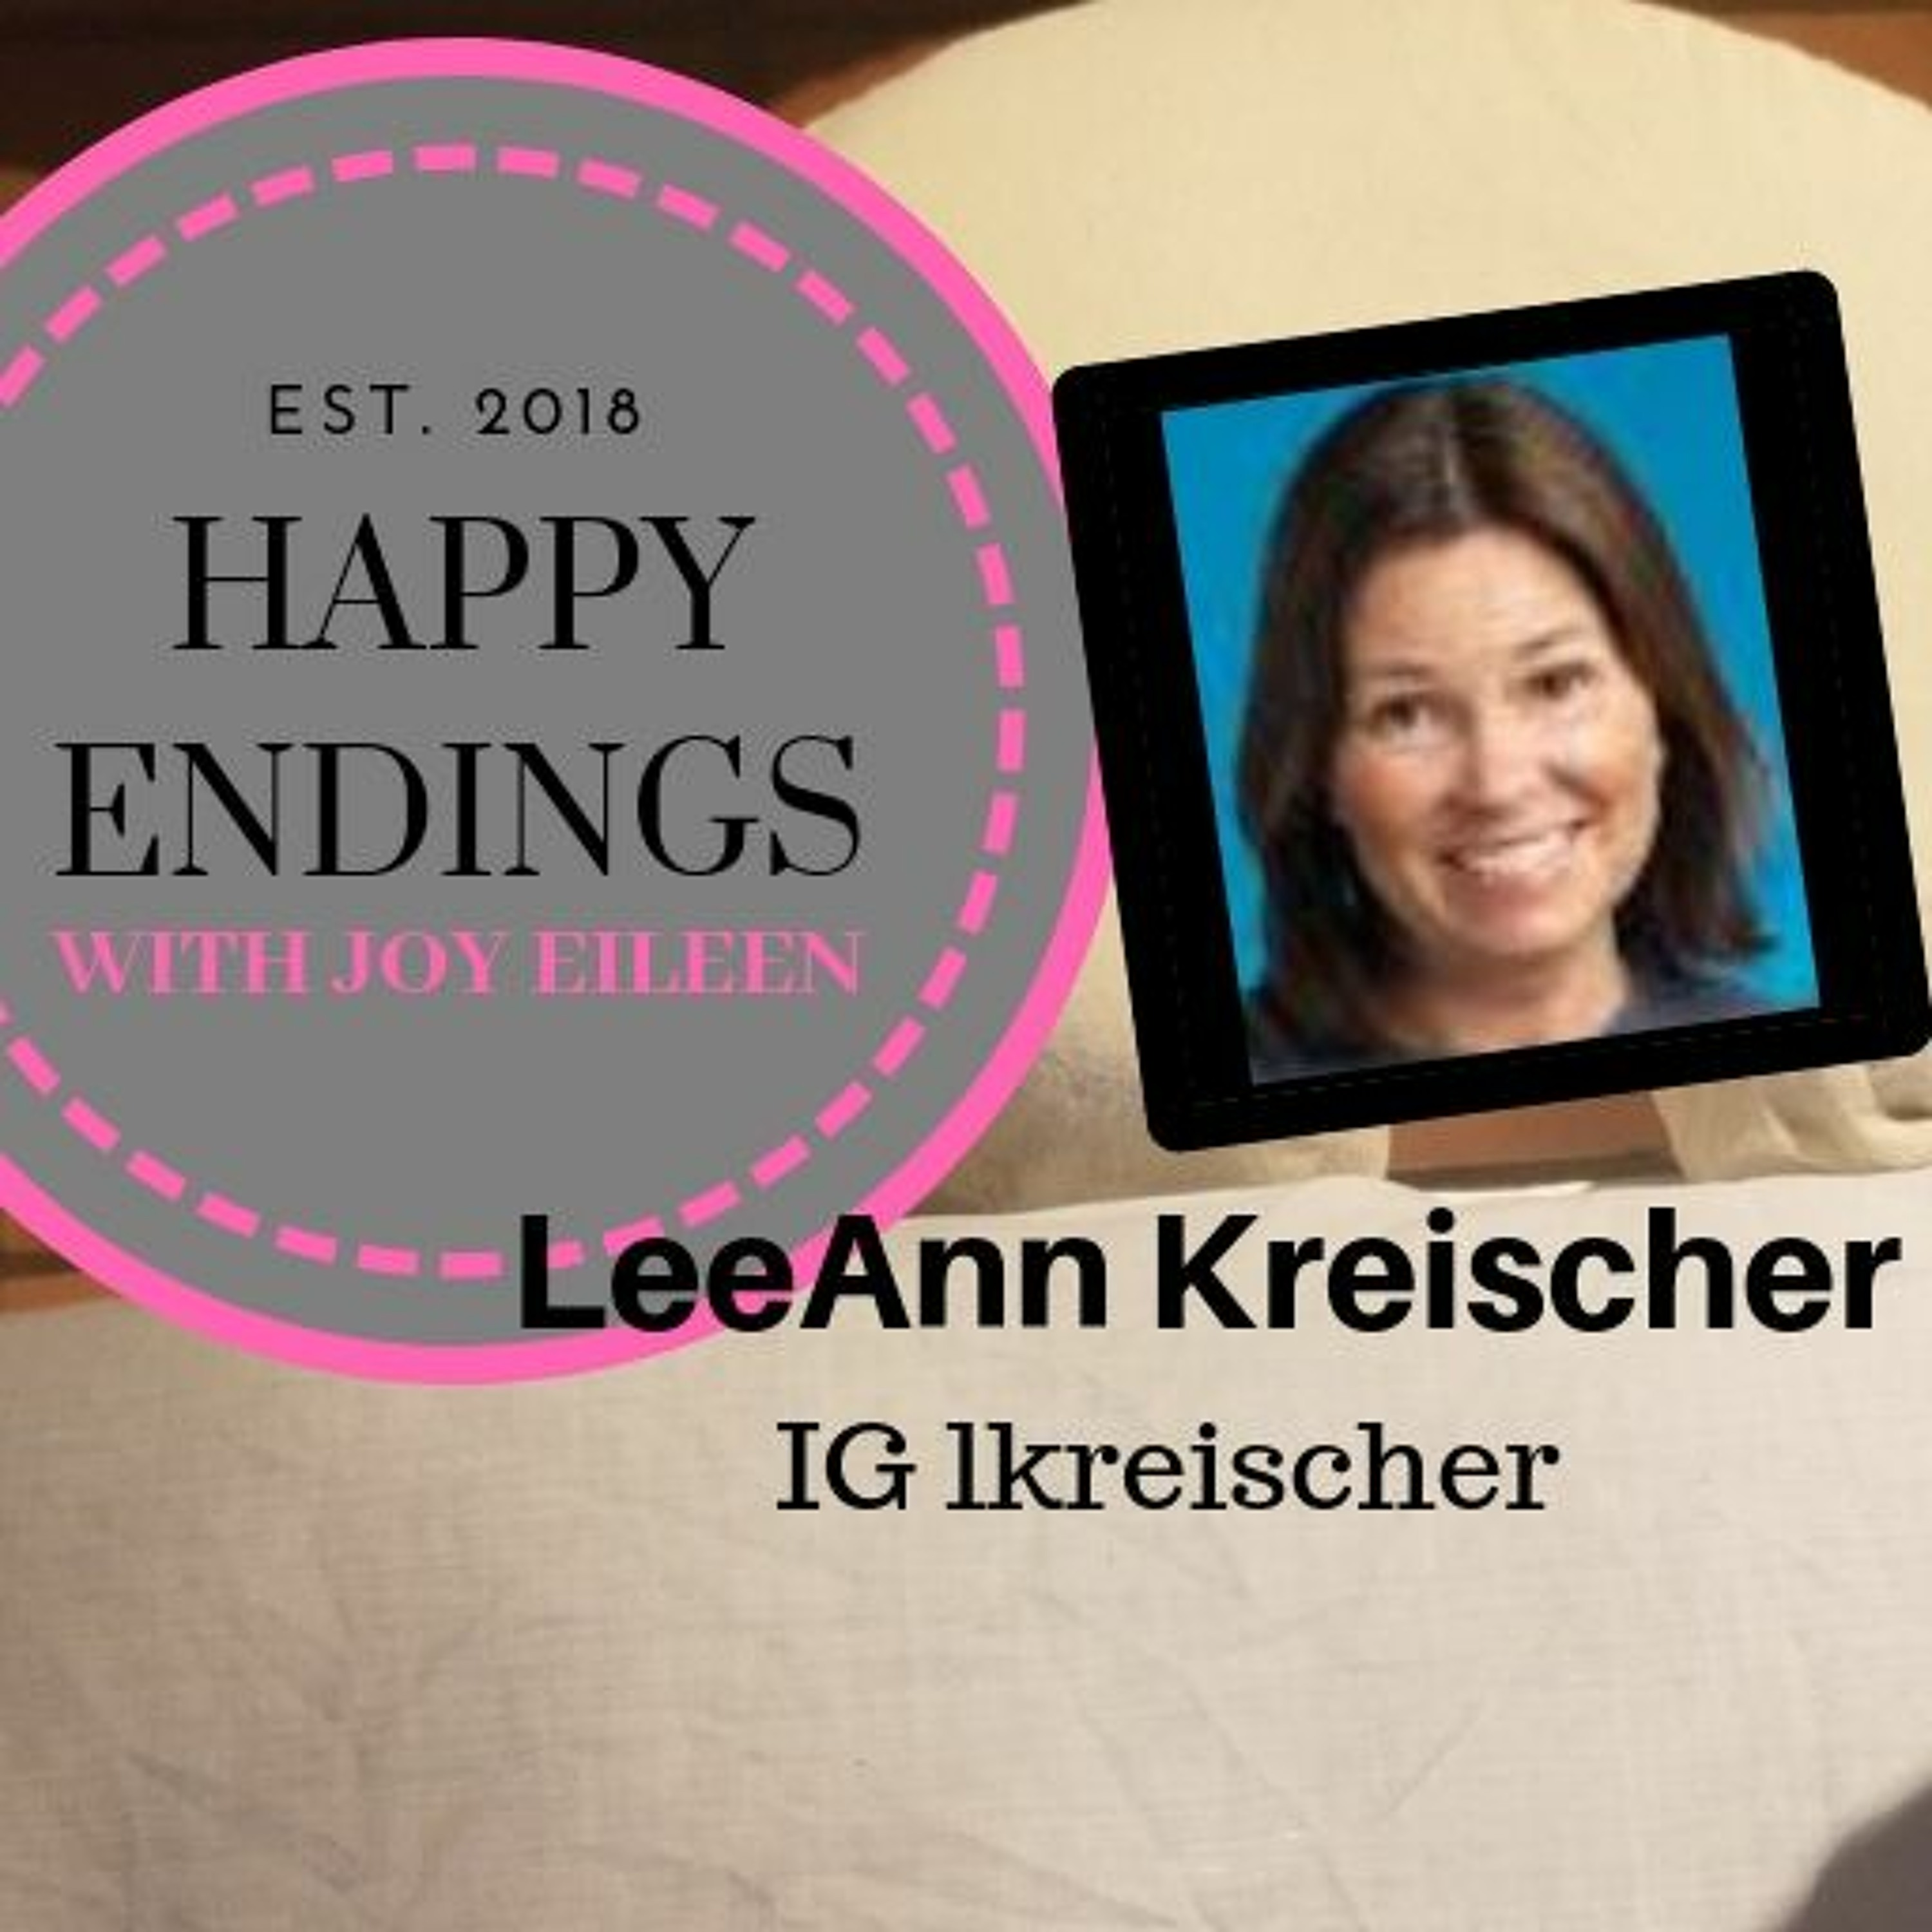 Leeann Kreischer Podcast Appearances Podchaser How can i contact leeann kreischer's management team or agent details, and how do i get in touch directly? podchaser